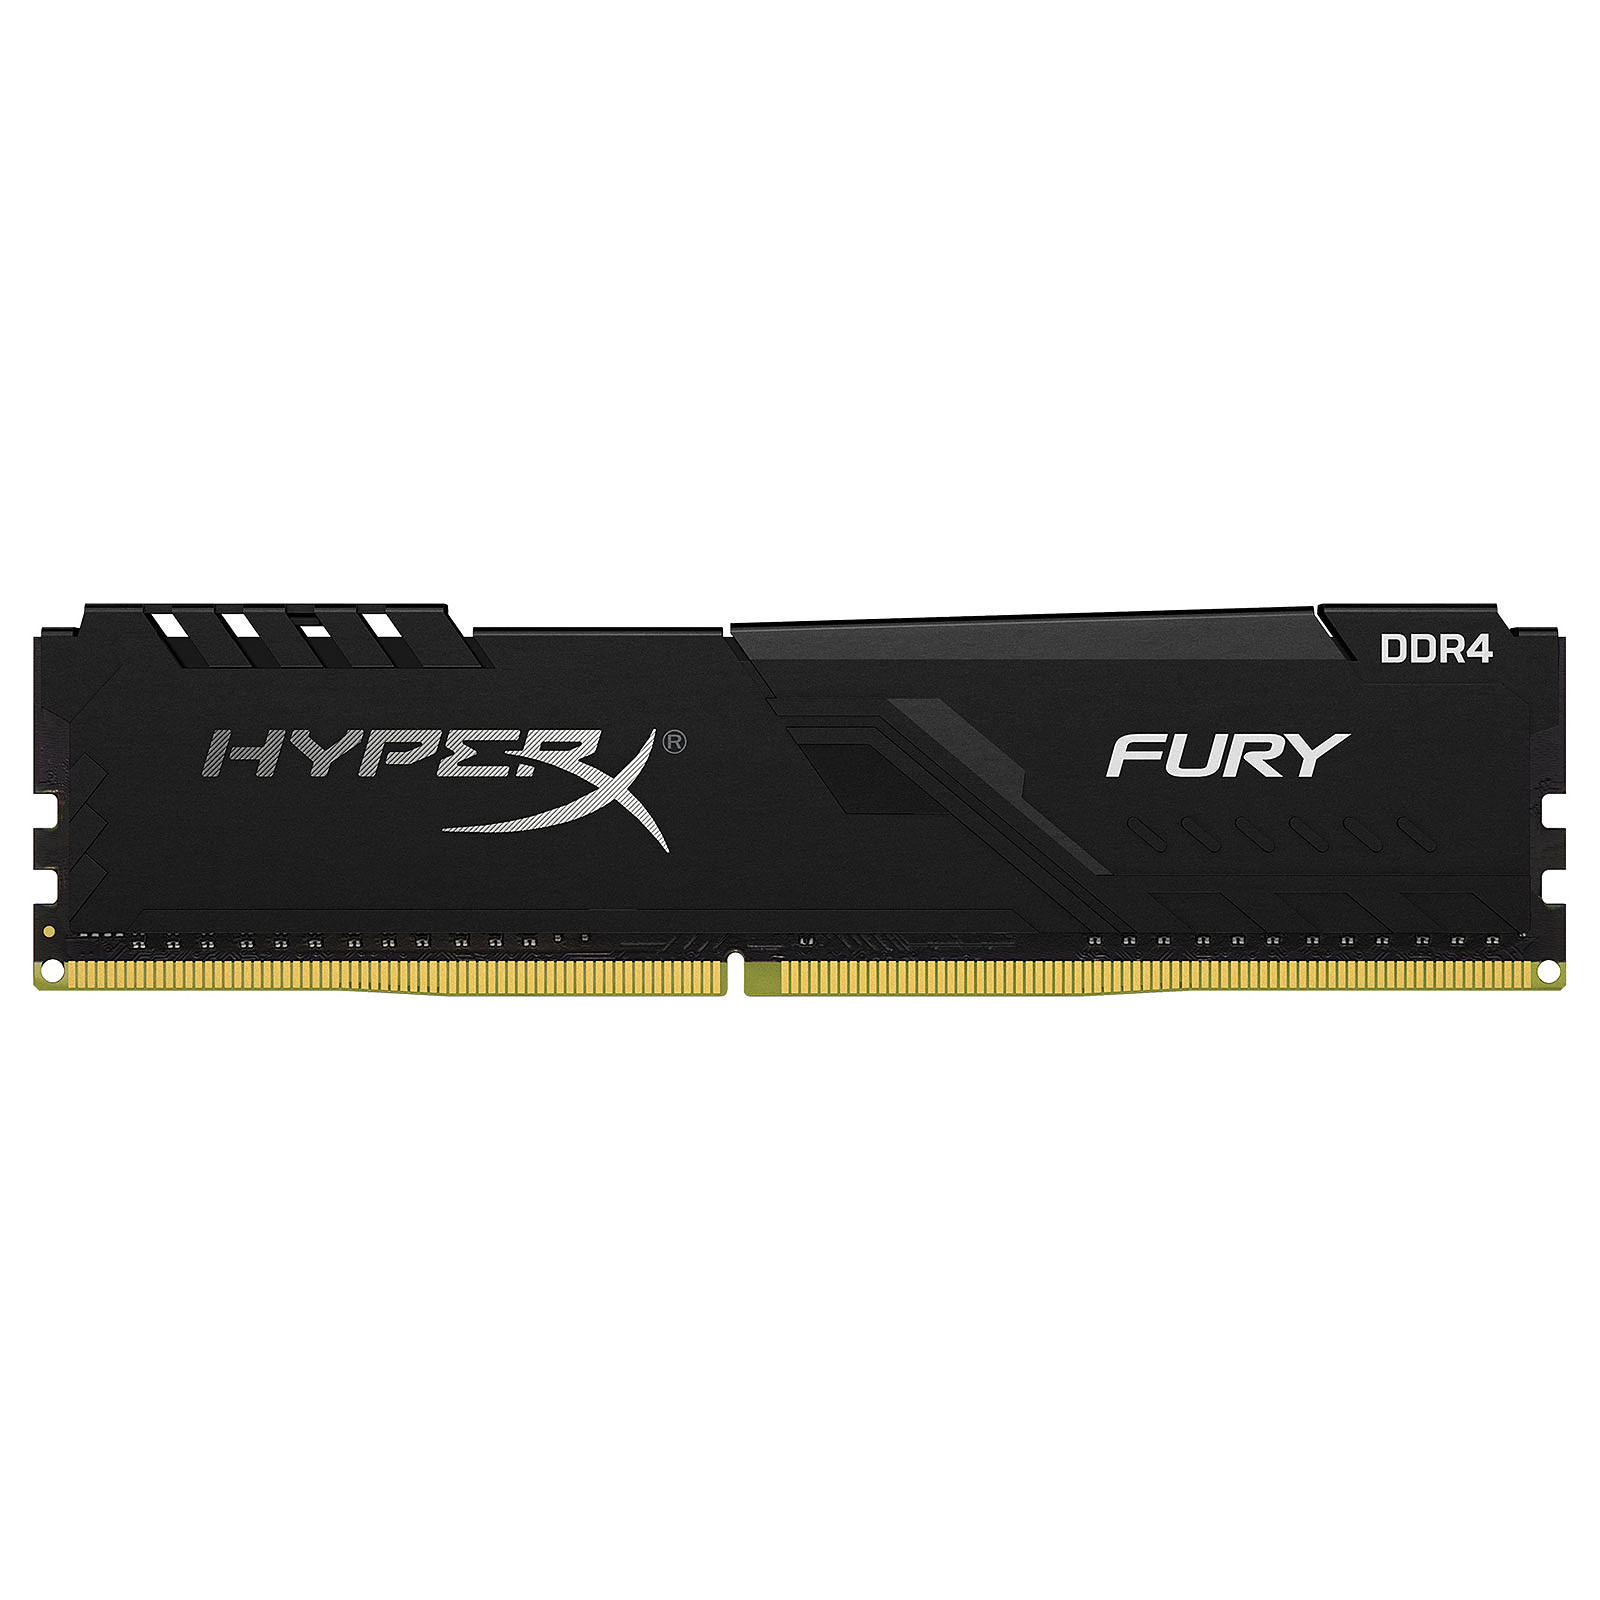 HyperX Fury 8GB DDR4 2666 MHz CL16